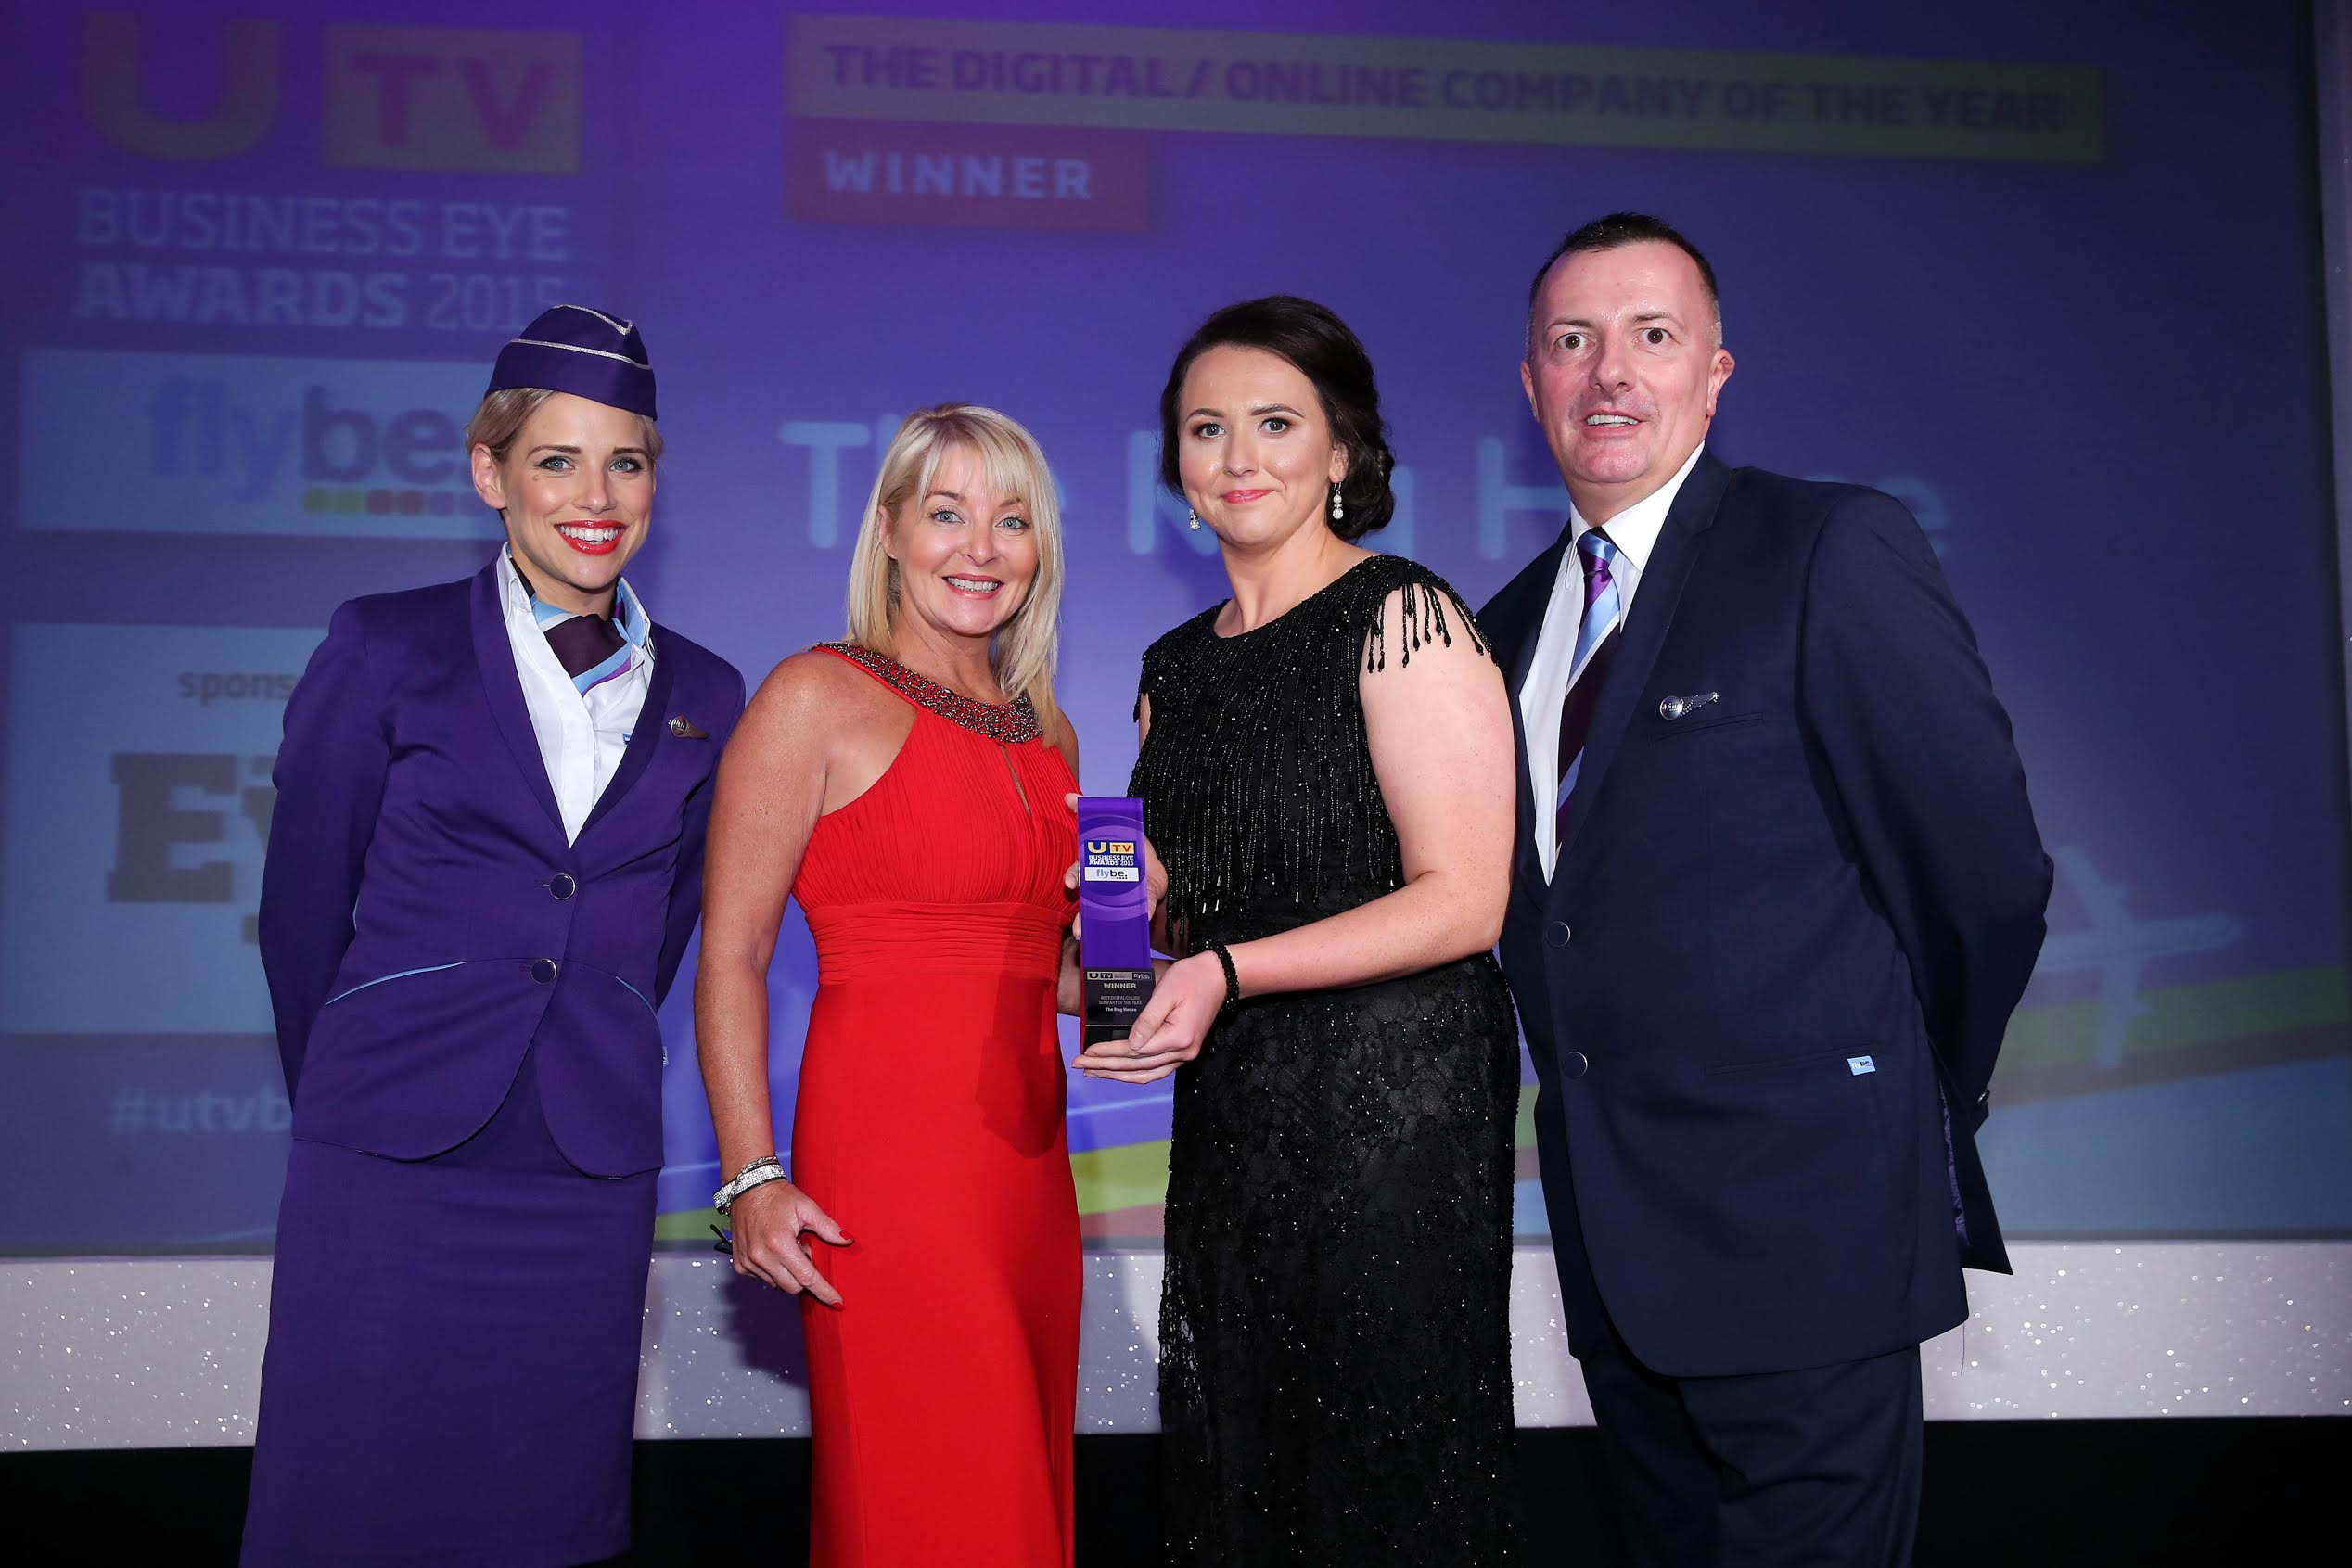 Clare Vallely accepts the award. UTV Business Eye Awards 2015 Best Digital/ Online Company of the Year Award